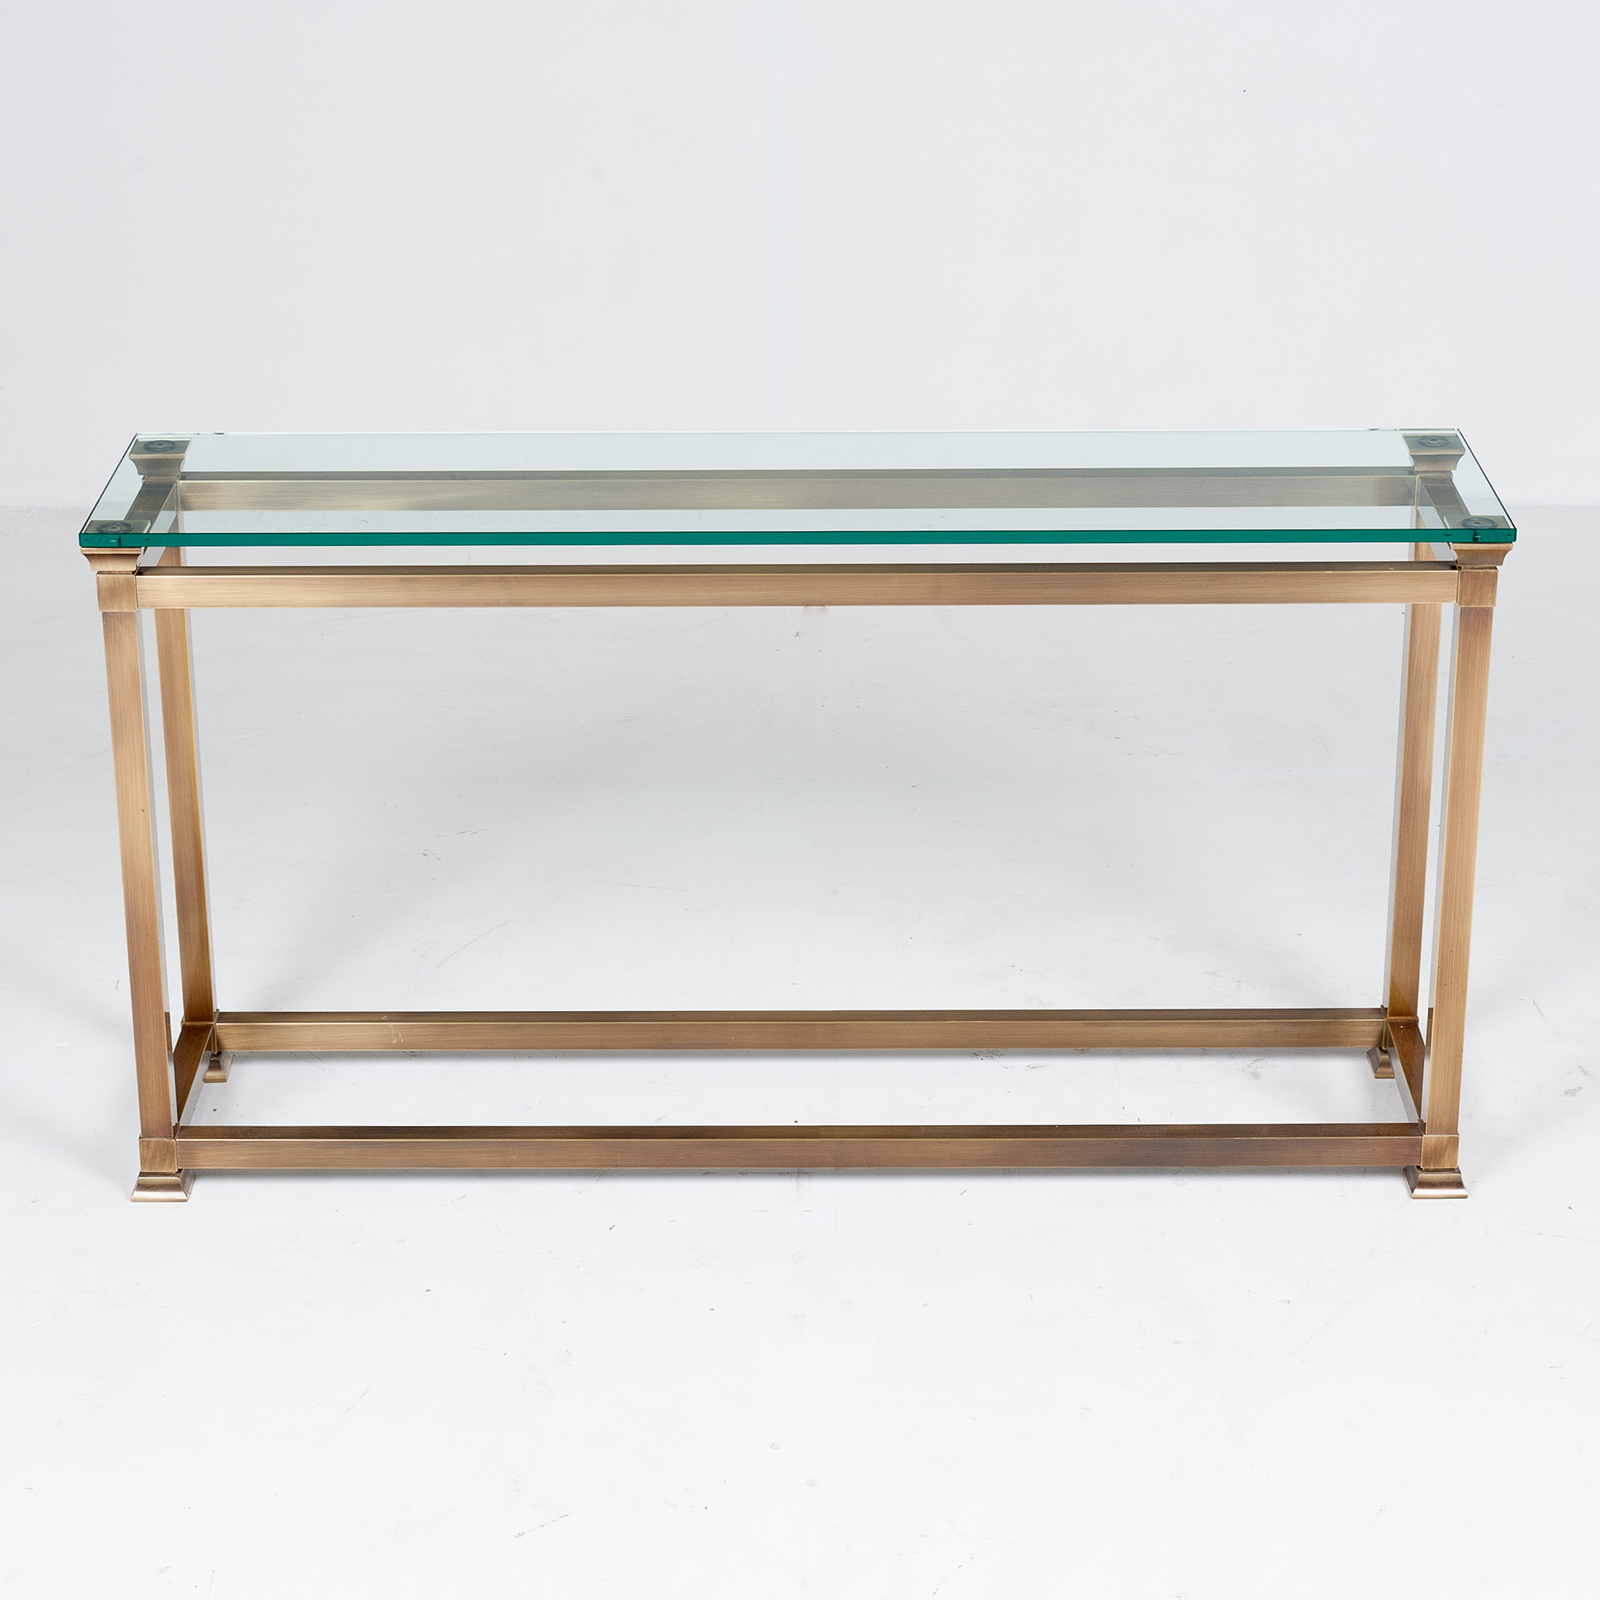 Wall Console In Brass, 1960s, The Netherlands2